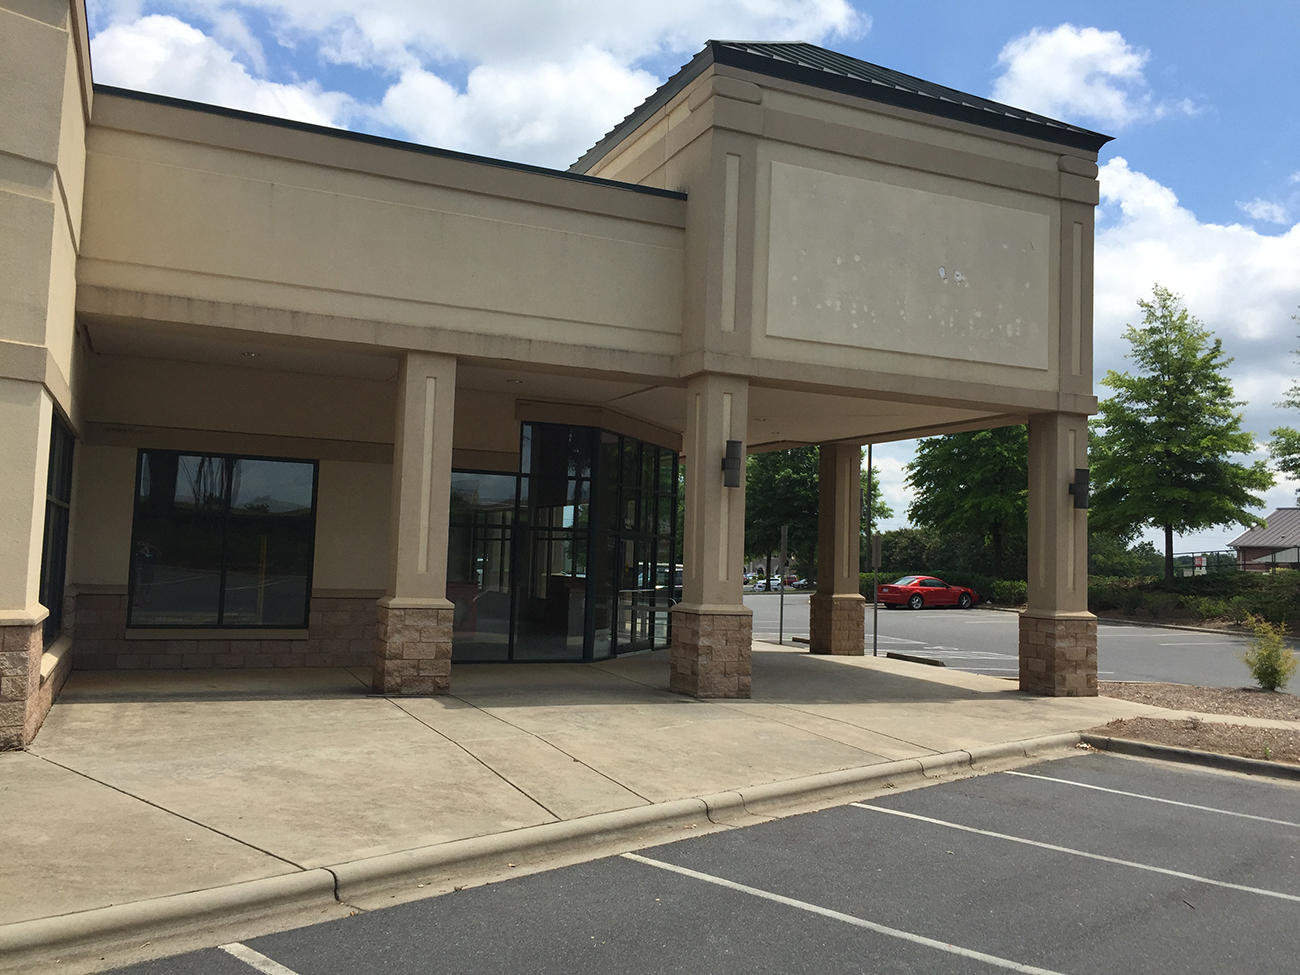 Habitat for Humanity's ReStore opening a new location in Pineville